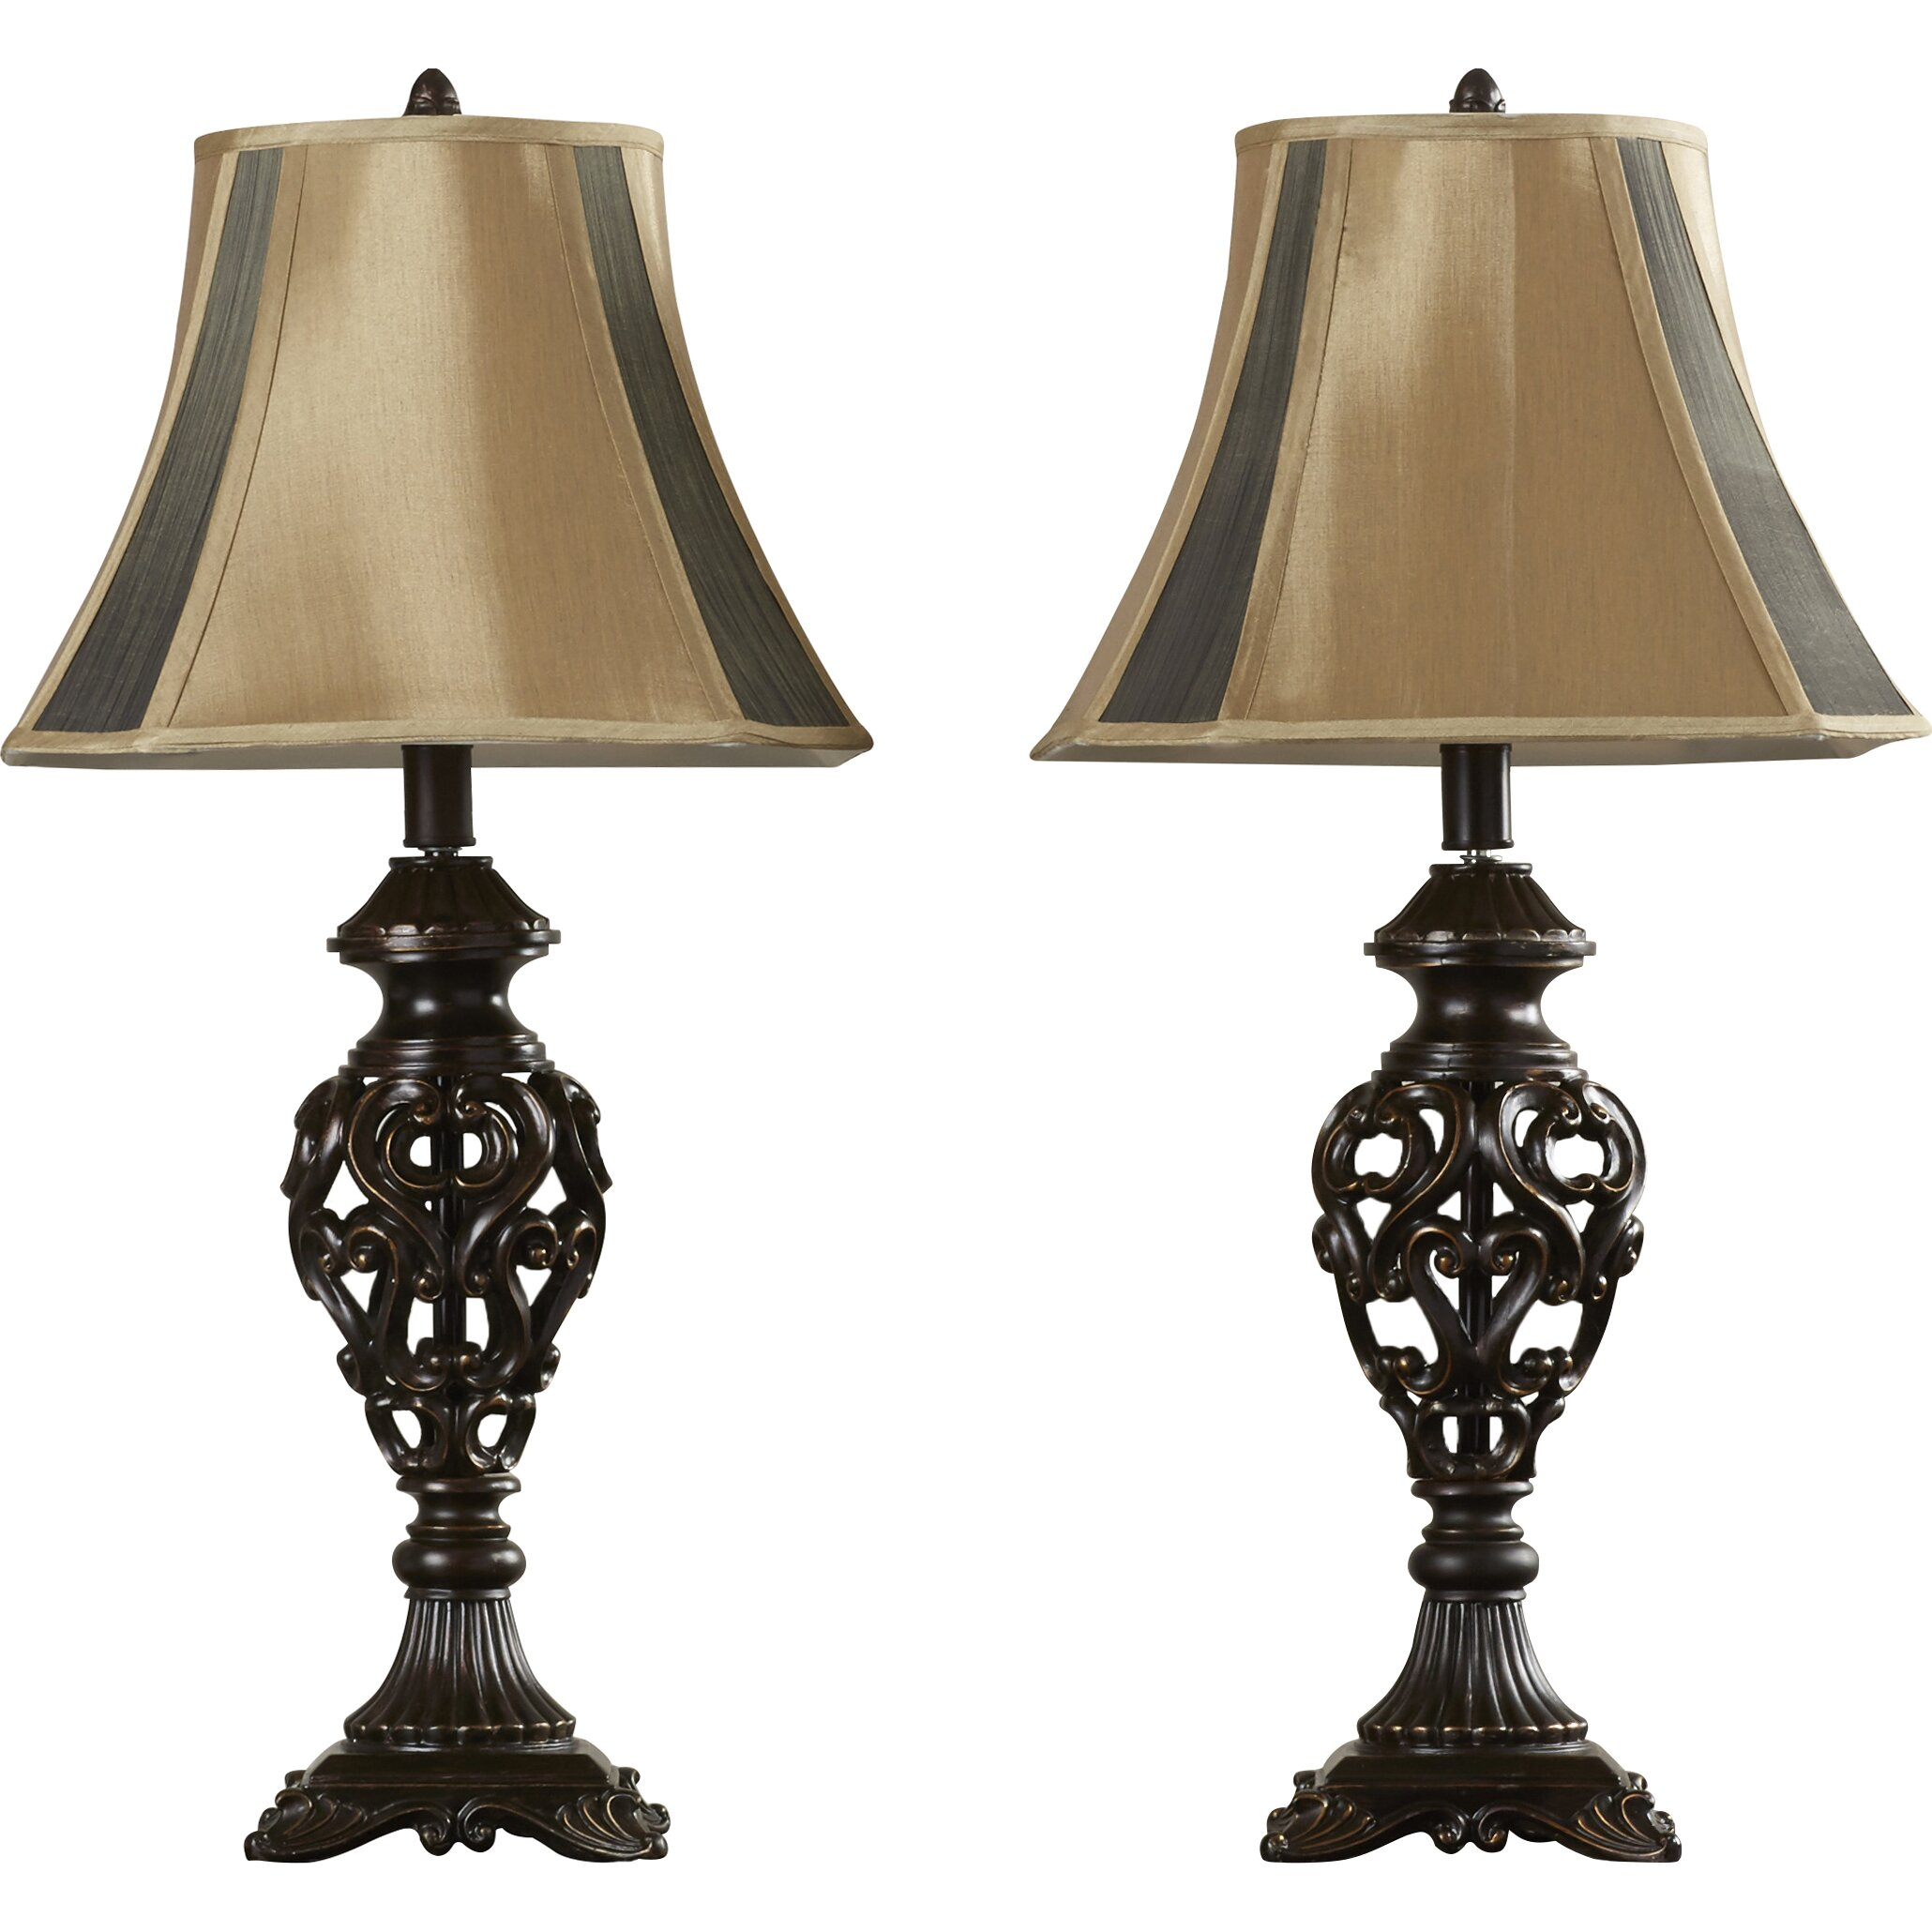 alcott hill lynchburg 32 table lamps set of 2 reviews wayfair. Black Bedroom Furniture Sets. Home Design Ideas